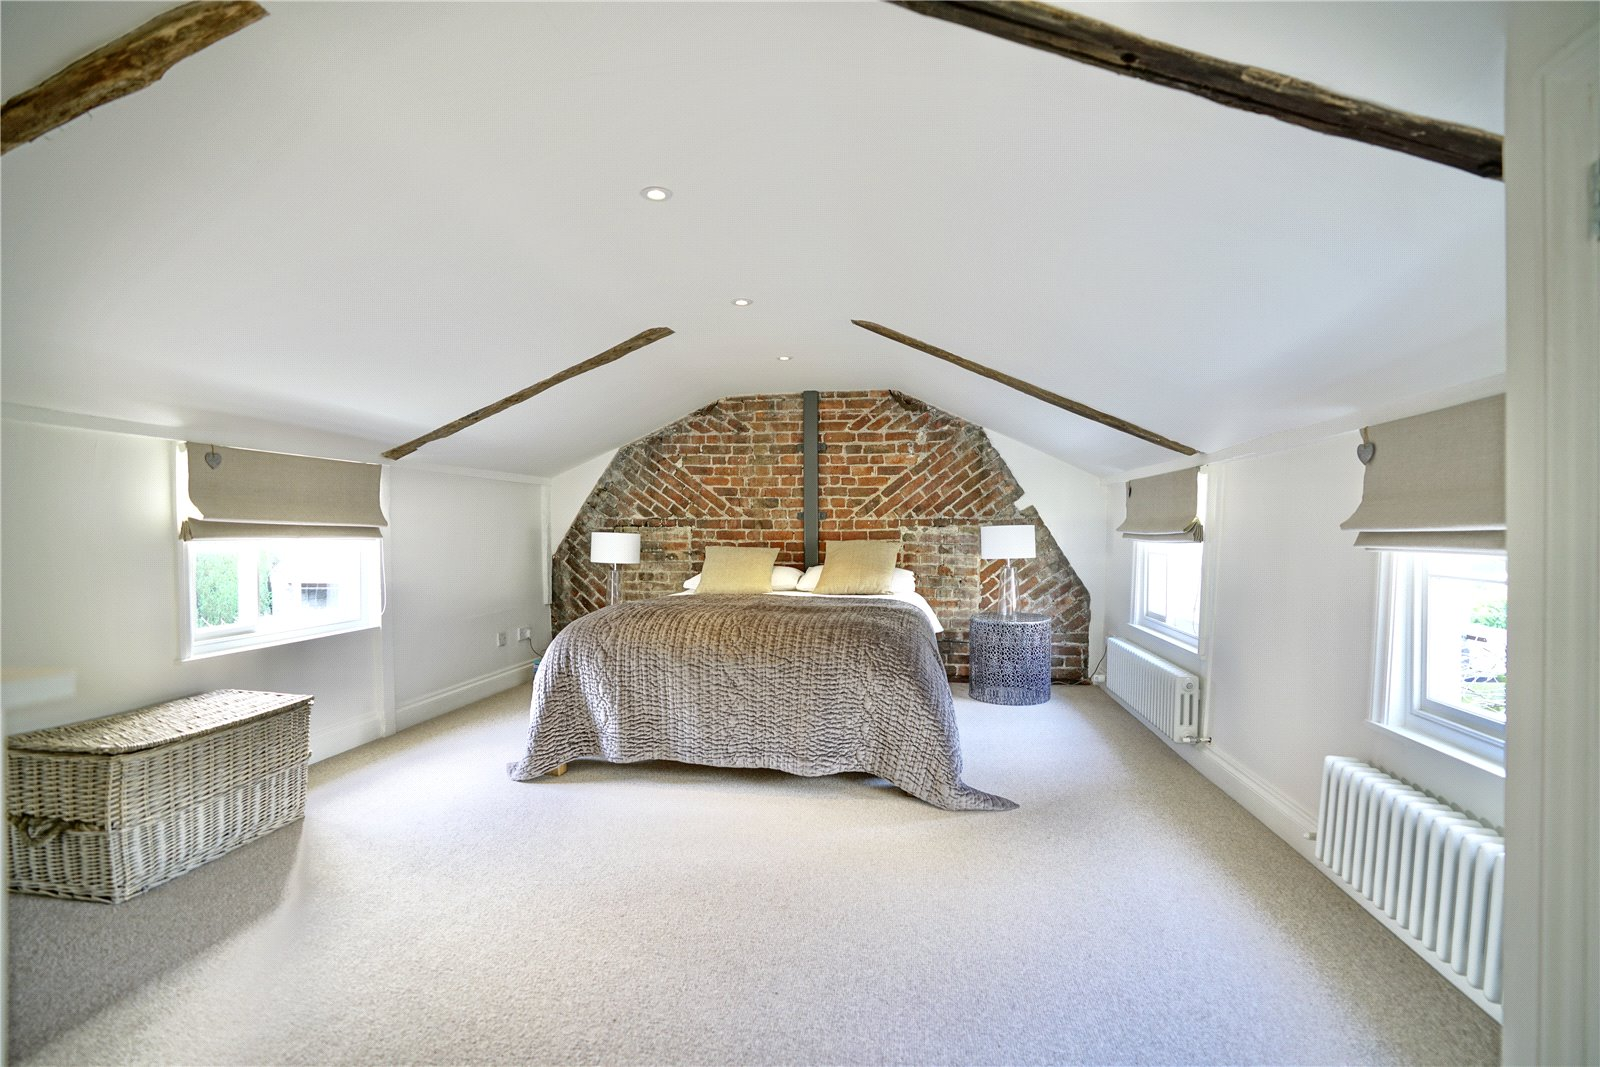 4 bed house for sale in Church Street, Buckden - Property Image 1